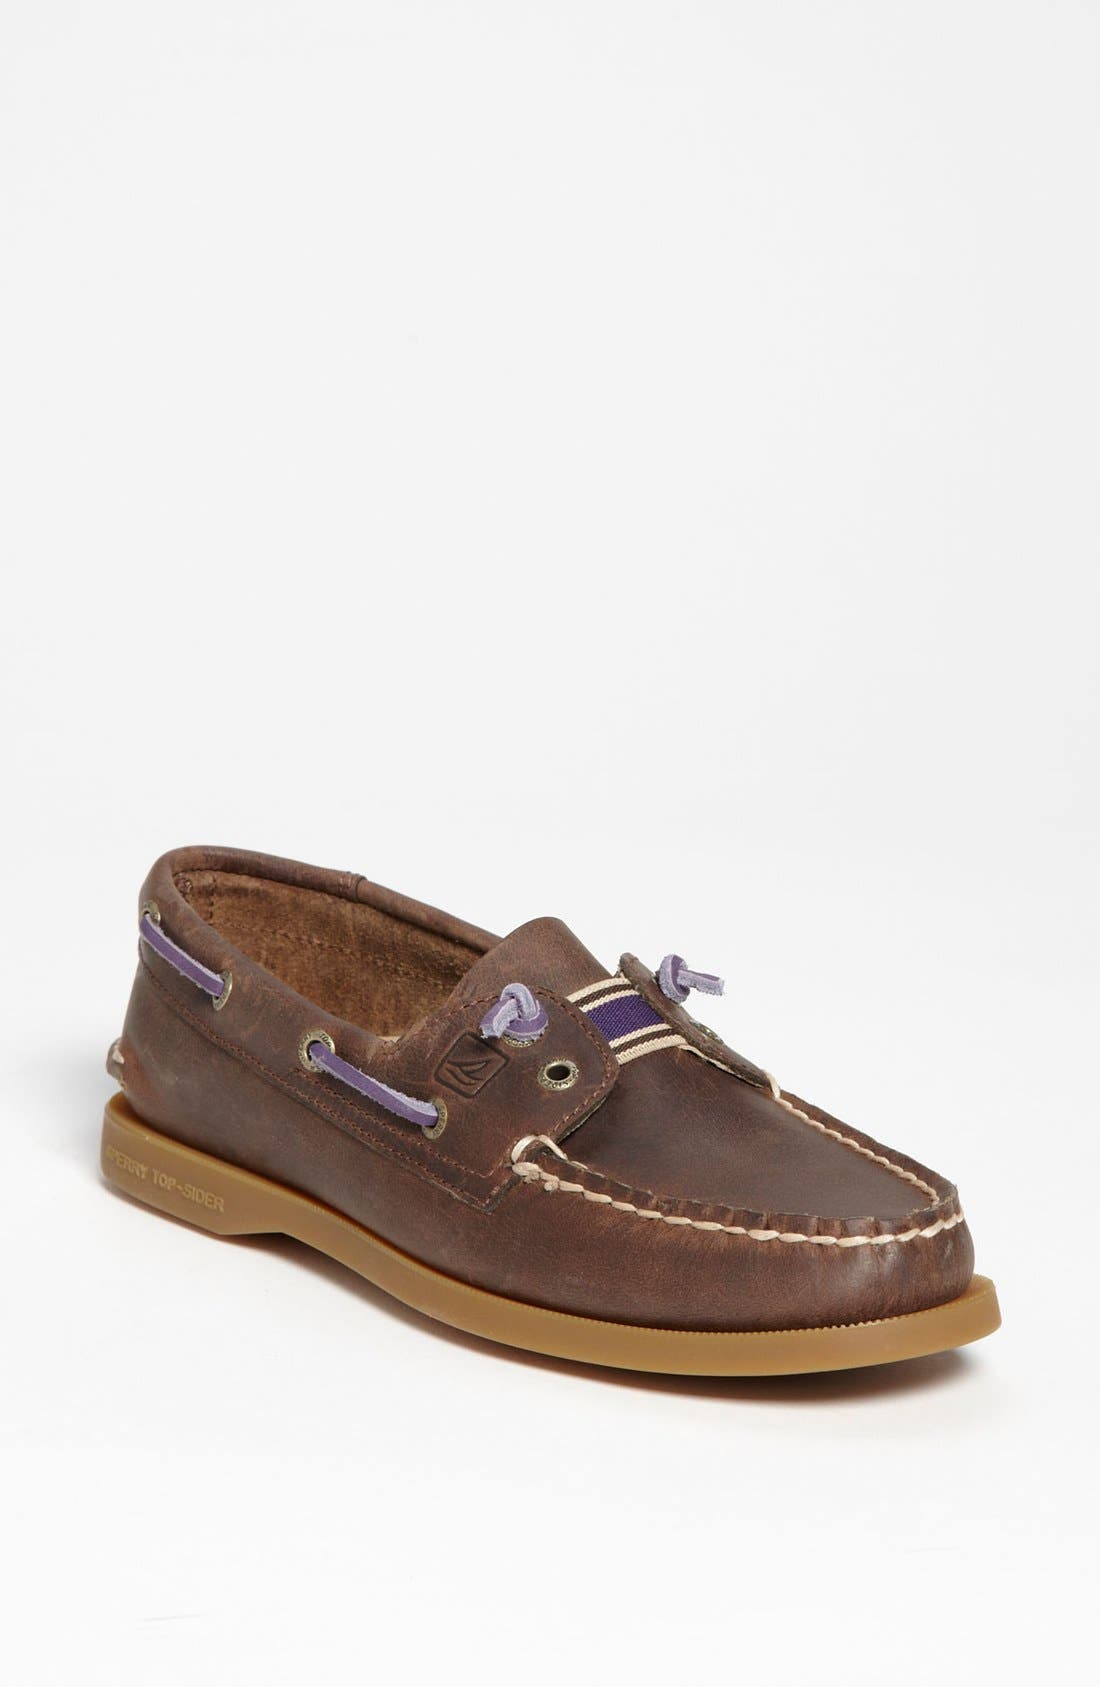 Alternate Image 1 Selected - Sperry Top-Sider® 'Lexington' Boat Shoe (Nordstrom Exclusive)